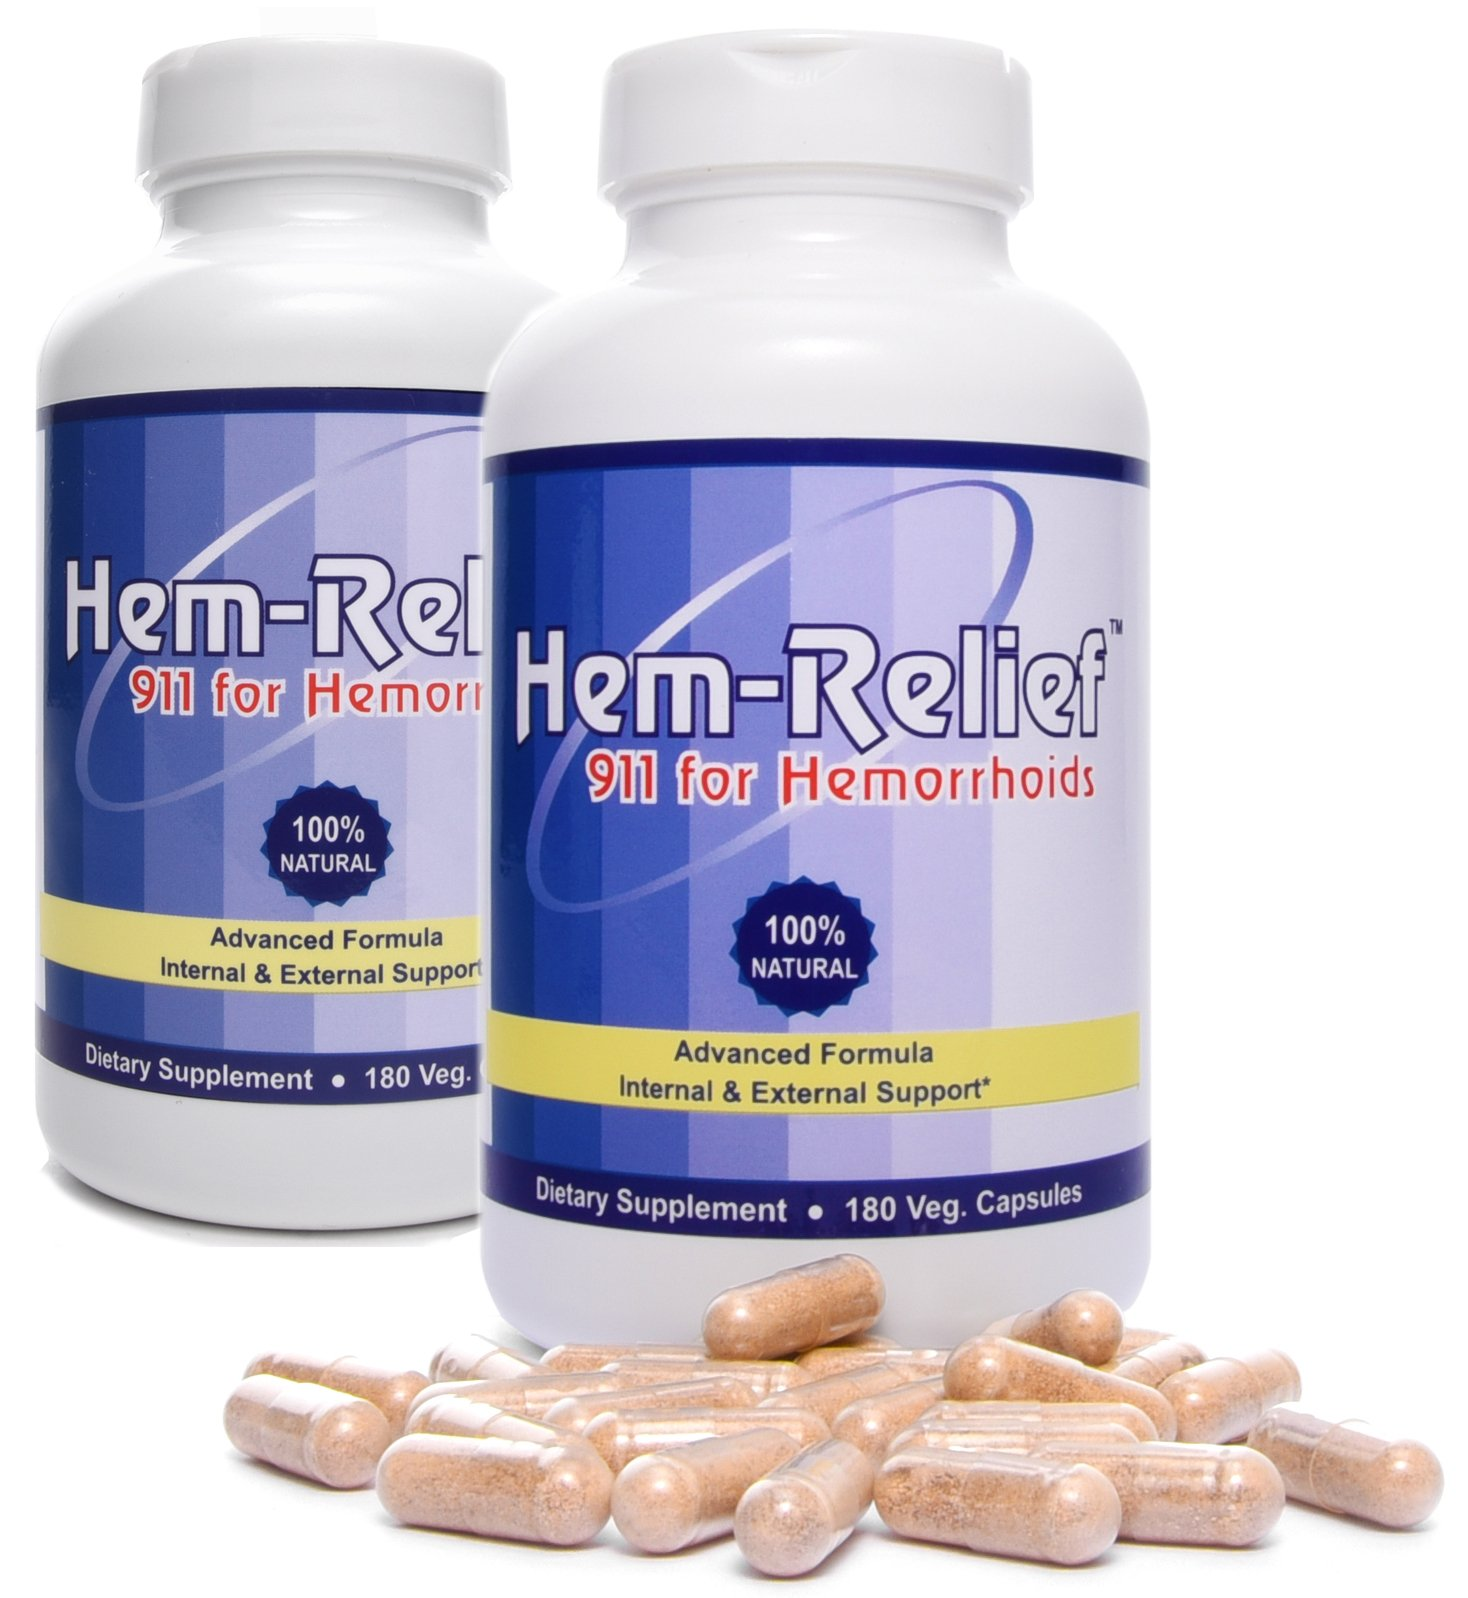 Western Herbal and Nutrition | Hem-Relief 911 for Hemorrhoids | 100% Natural Formula | Helps with Pain, Itching, Burning | Fast Acting Supplement | Internal & External Treatment | 360 Vegetarian Caps by Hem Relief